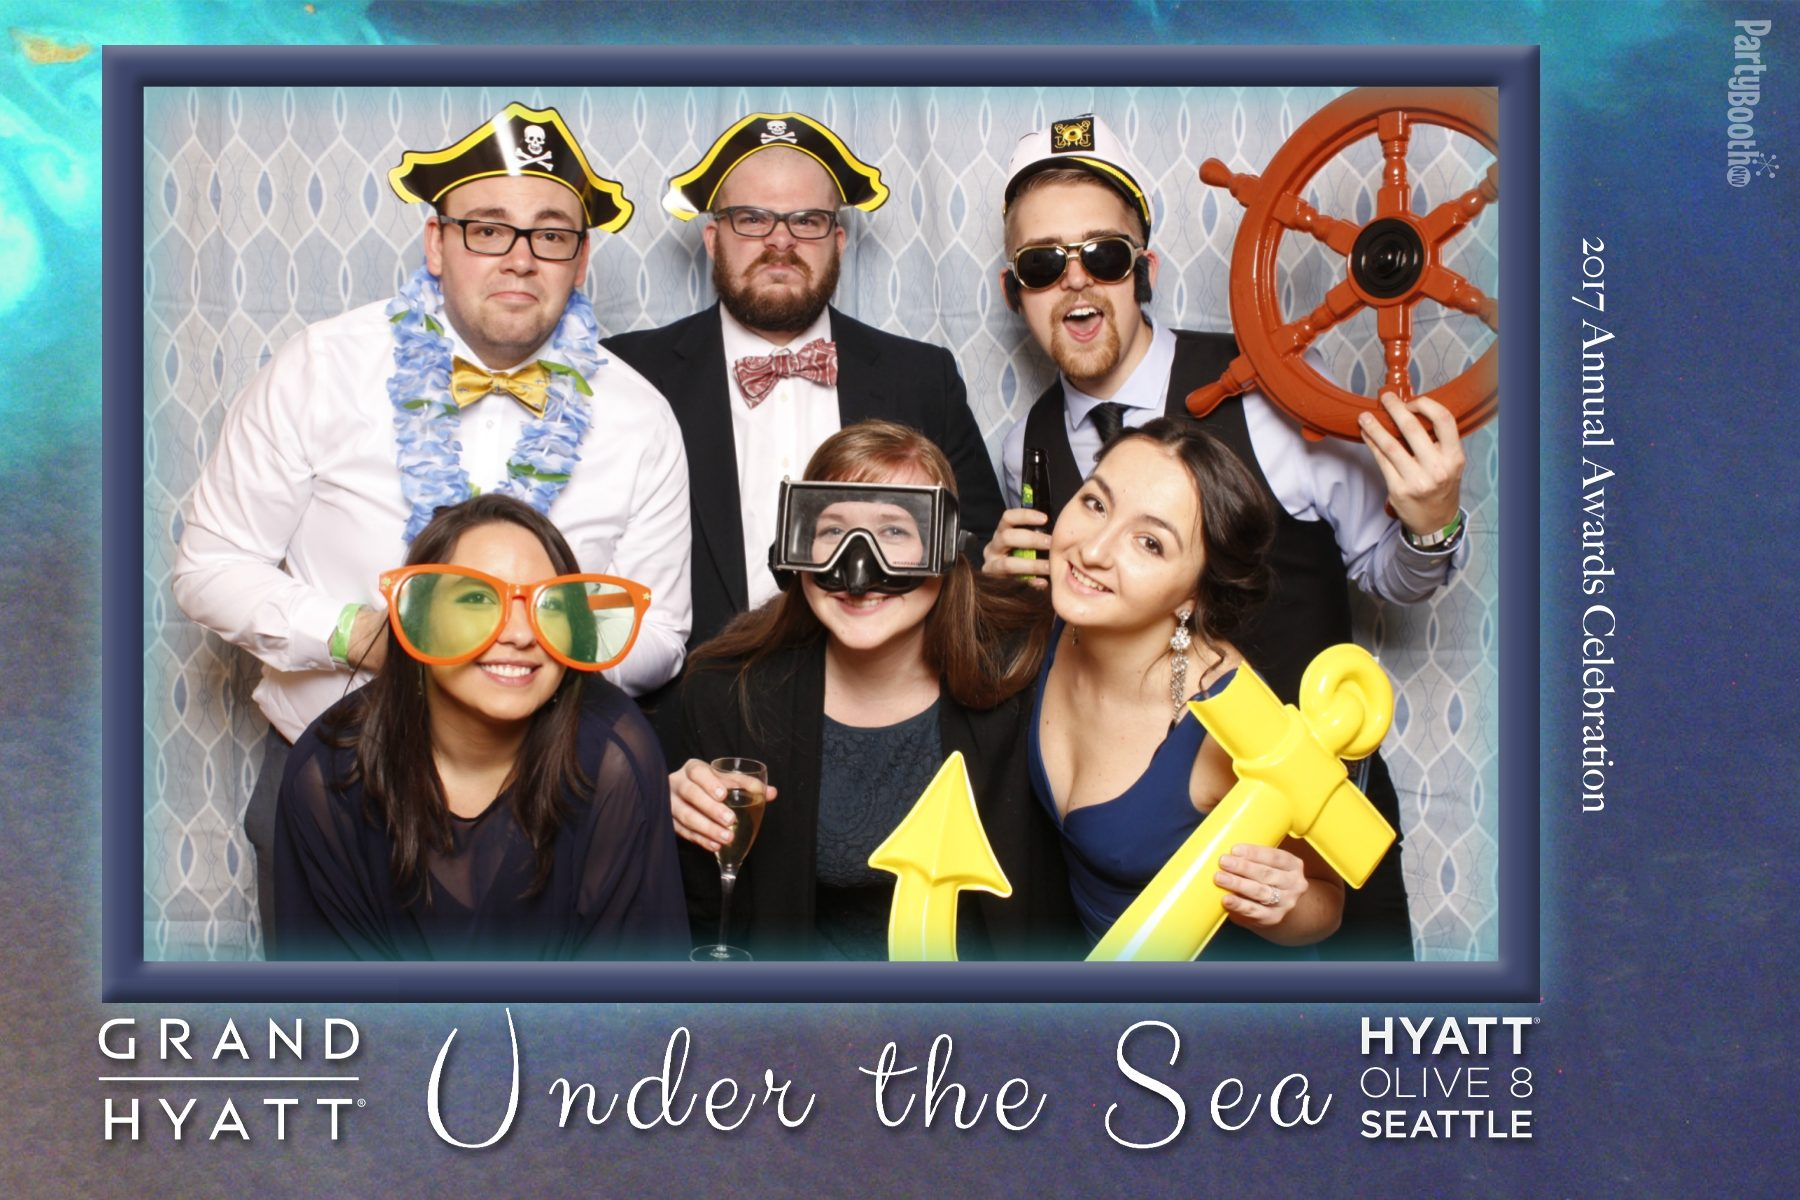 The associates of Seattle's Grand Hyatt and Hyatt at Olive 8 let their hair down for their Annual Awards Banquet! Guests were treated to food, fun, entertainment, music, and a photo booth all in the theme of the evening - Under The Sea. Tonight We PartyBooth! Seattle Photo Booth ©2017 PartyBoothNW.com